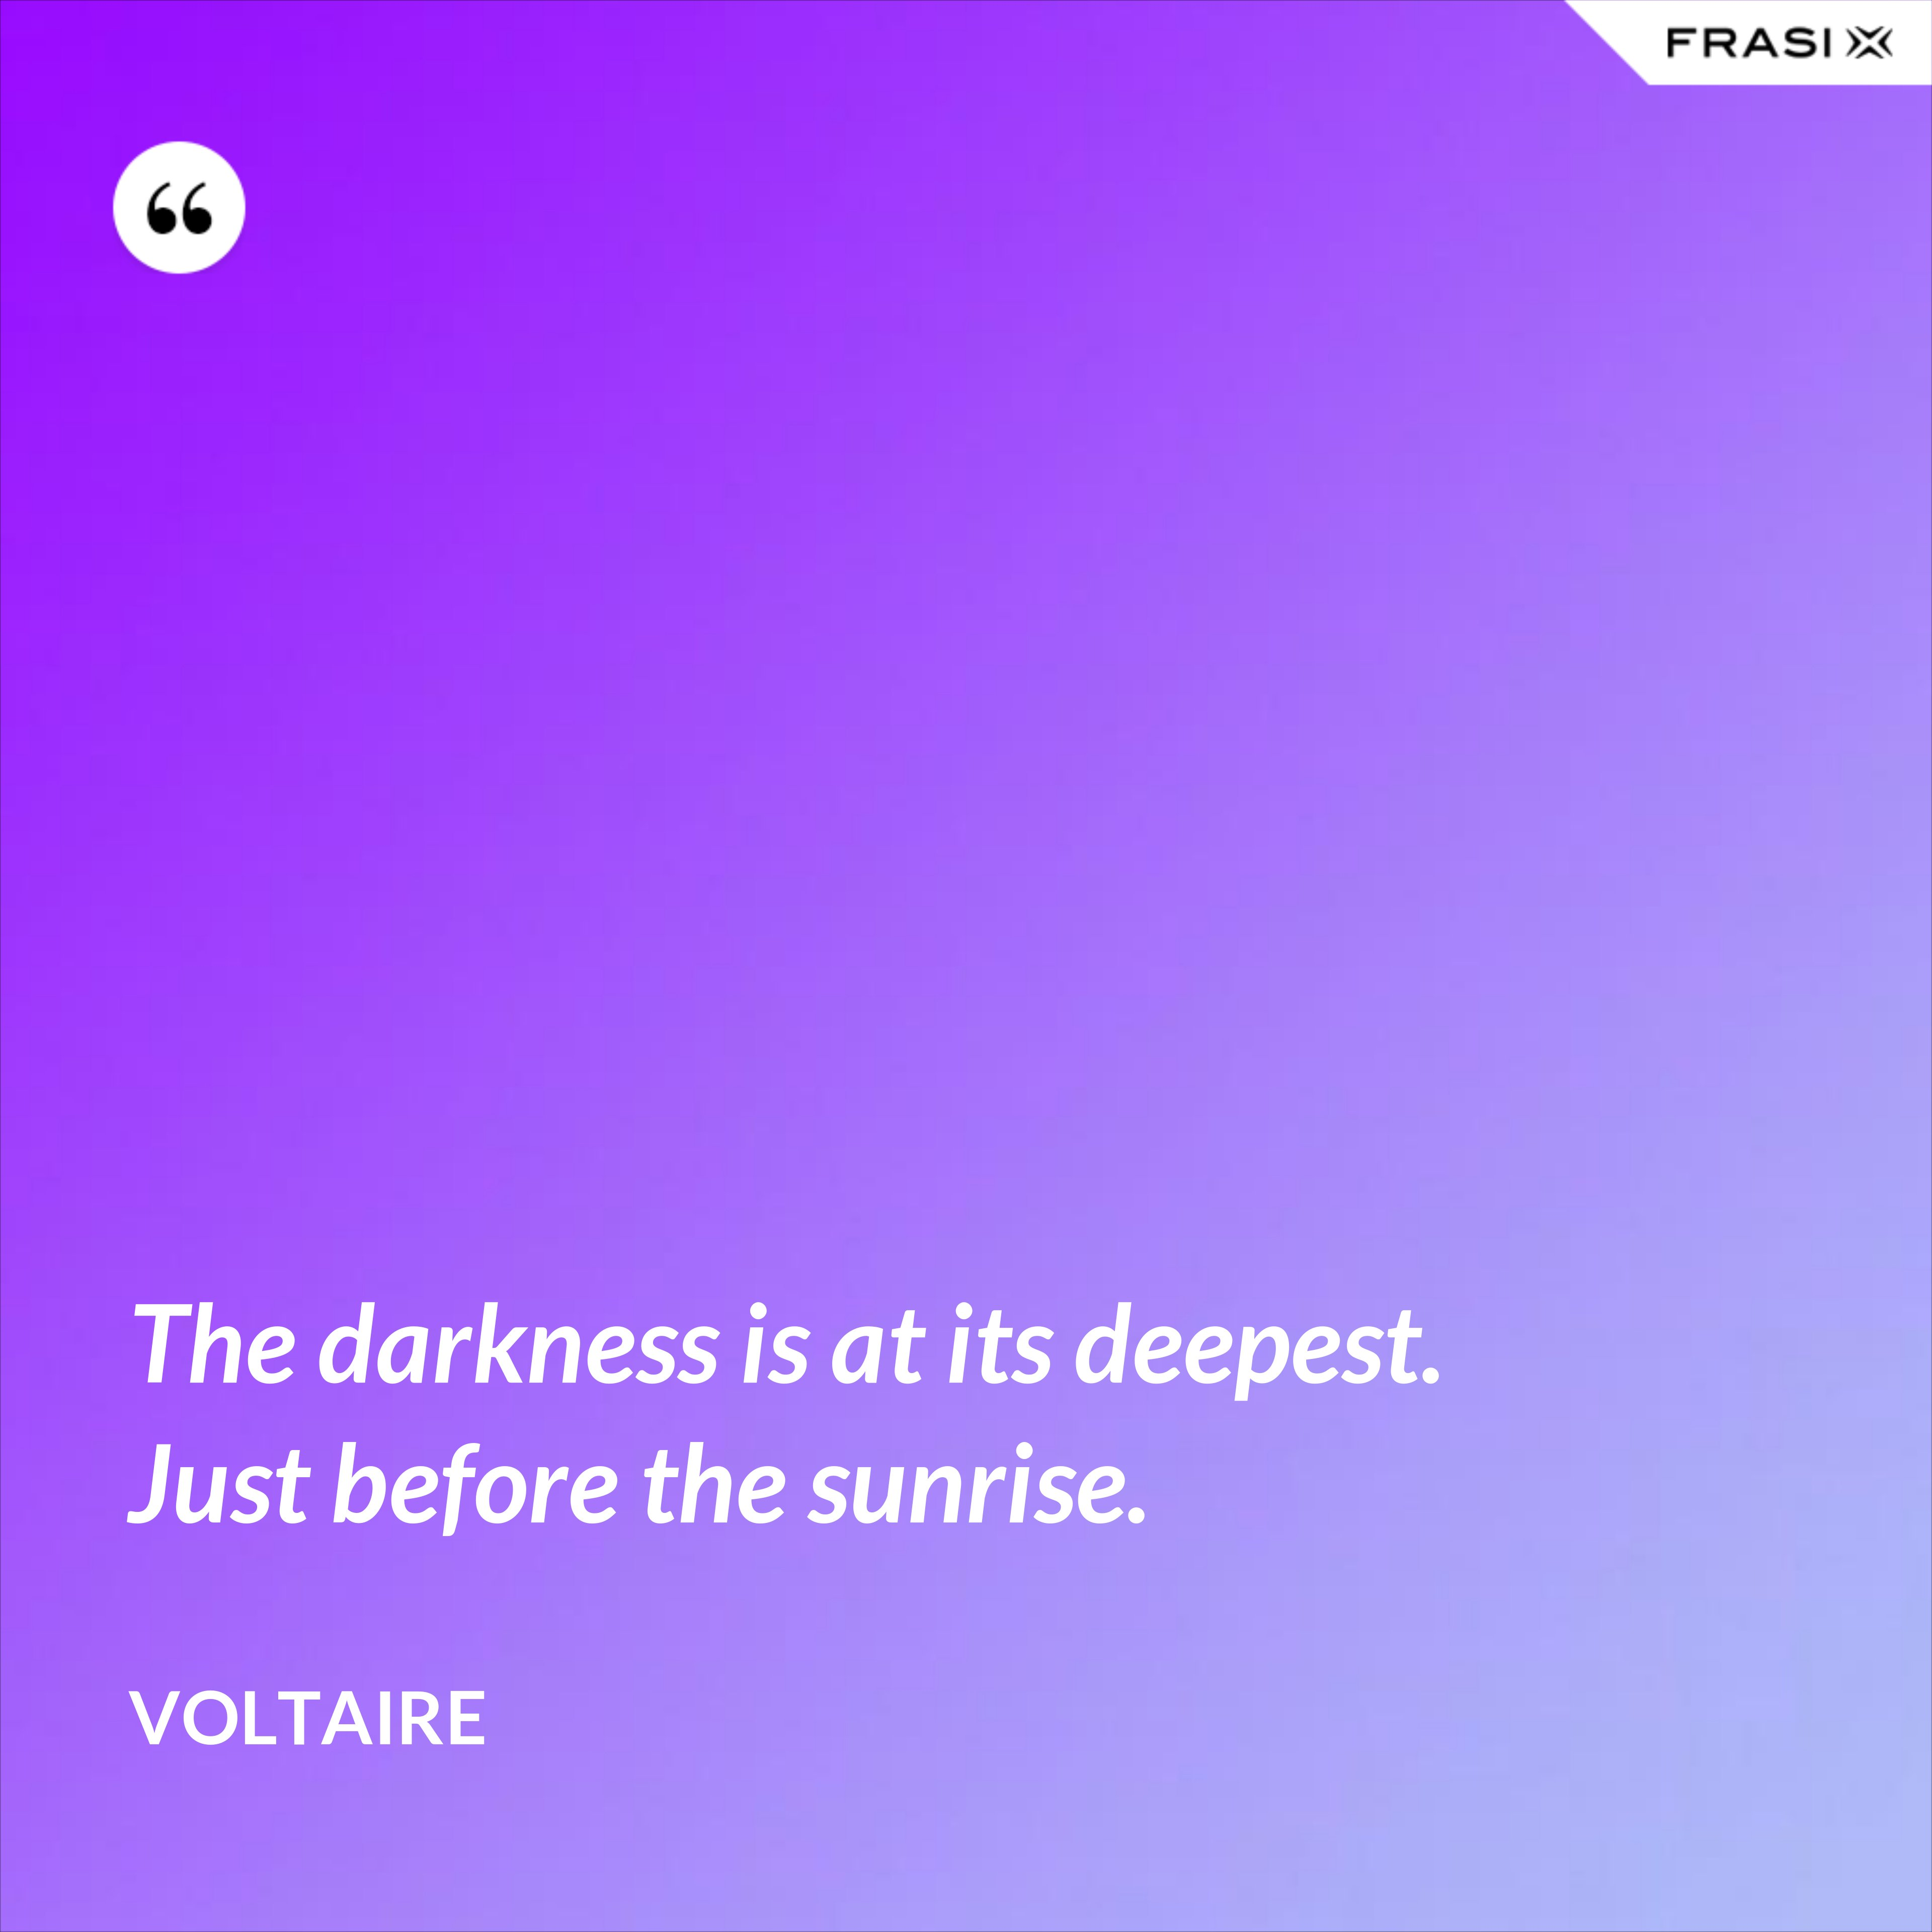 The darkness is at its deepest. Just before the sunrise. - Voltaire